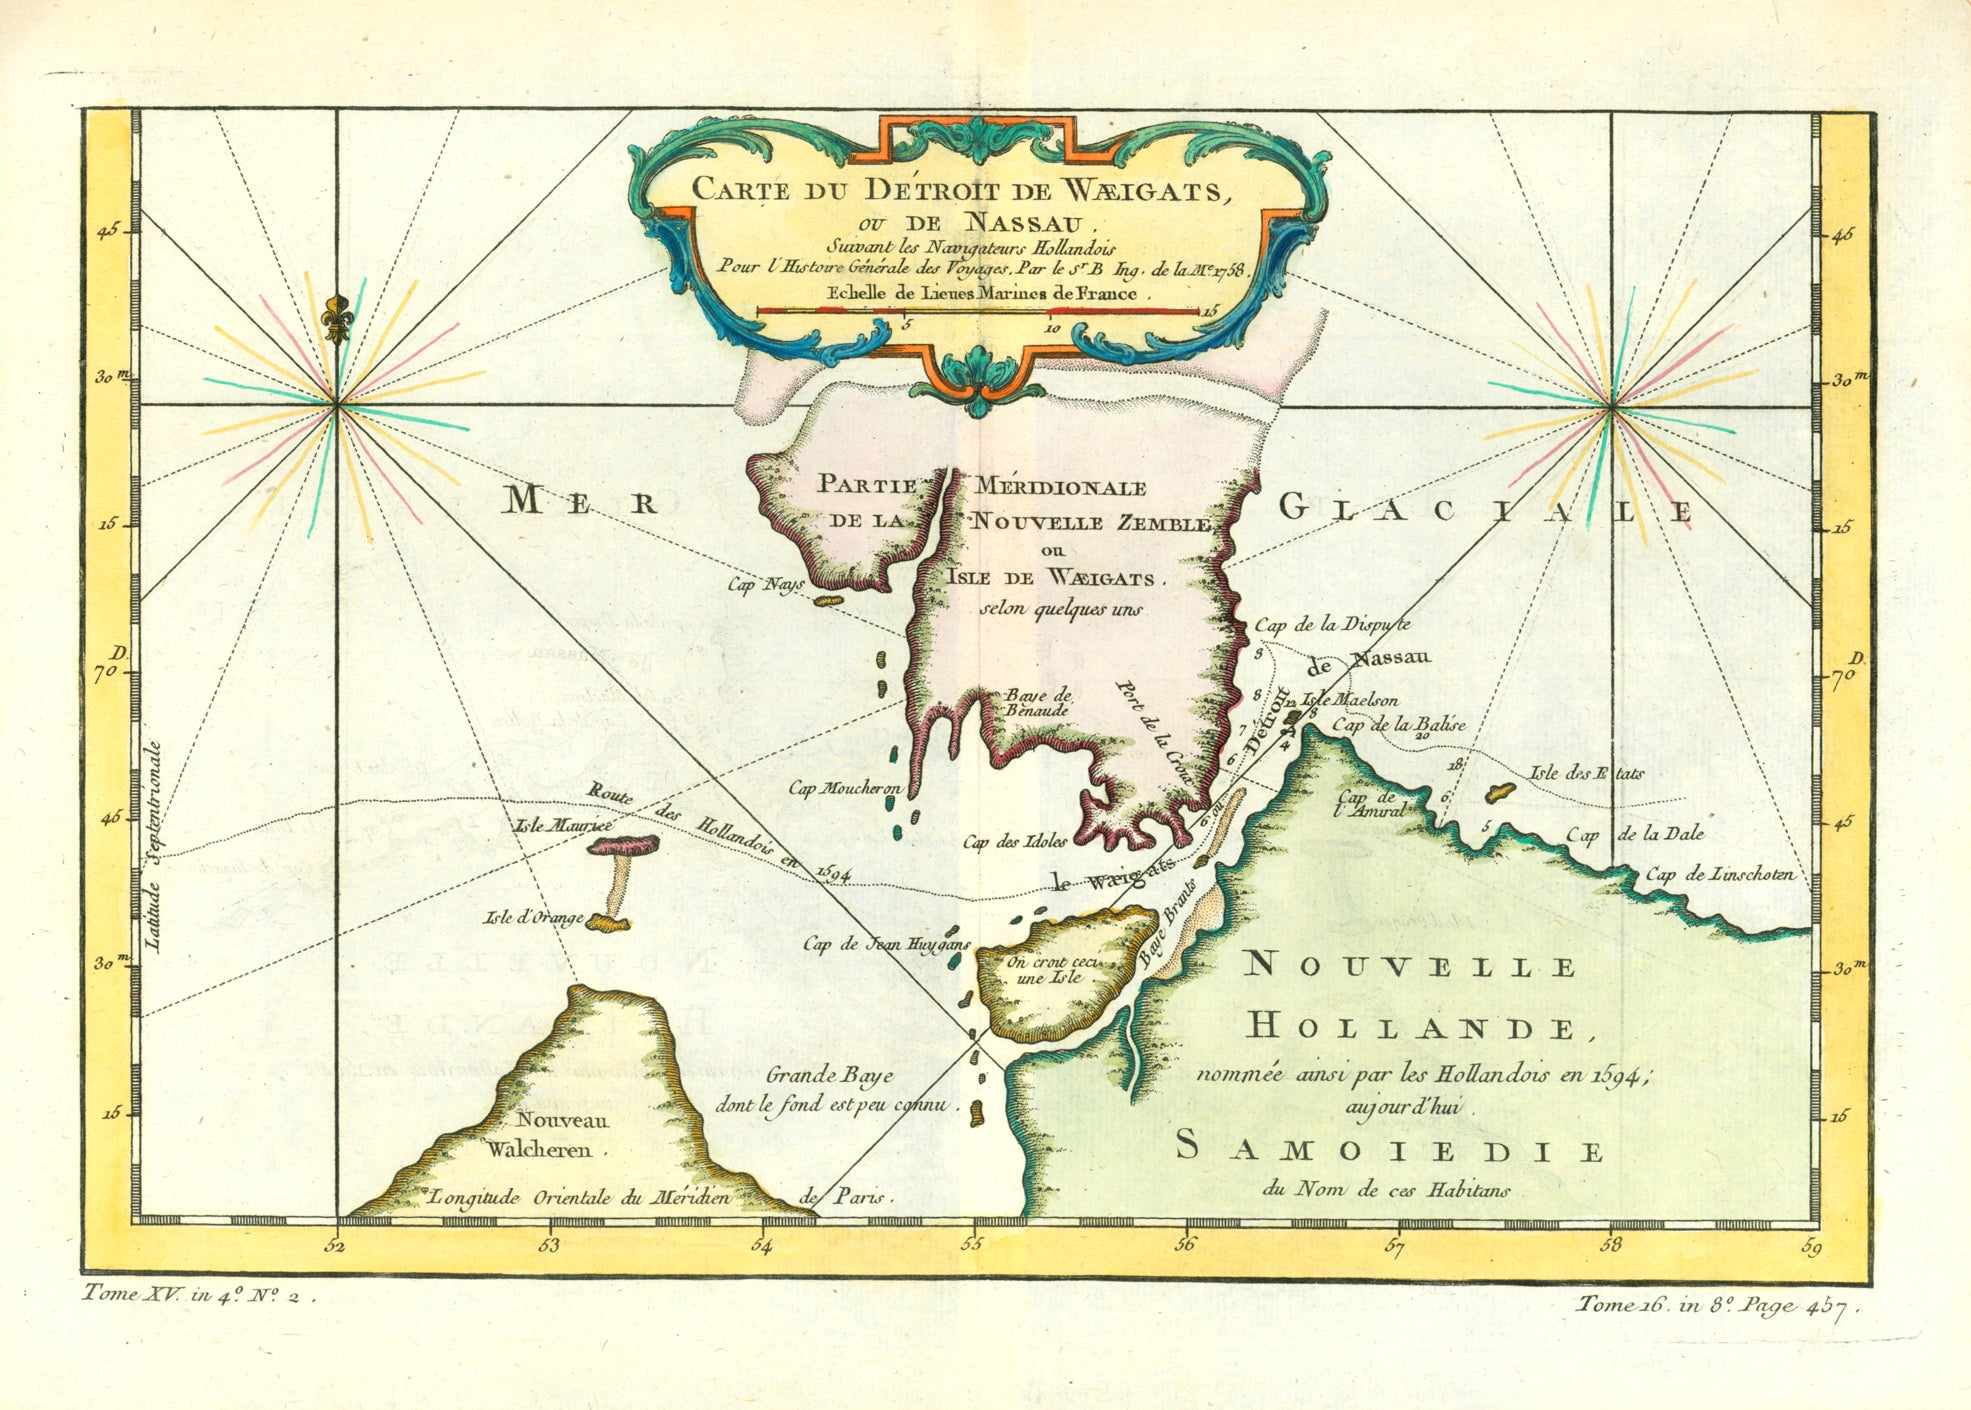 """Carte du Detroit de Waeigats, ou de Nassua "". Copper etching by M. Bellin in recent coloring. Dated 1758.  A decorative map of a remote and almost unknown area. On each side of the island of Novaya Zemlya is a windrose in the Arctic Sea. In the southwest is Cape Russkly Zavarot and the area shown as Nouvelle Hollande is the Yugorskiy Penninsula."